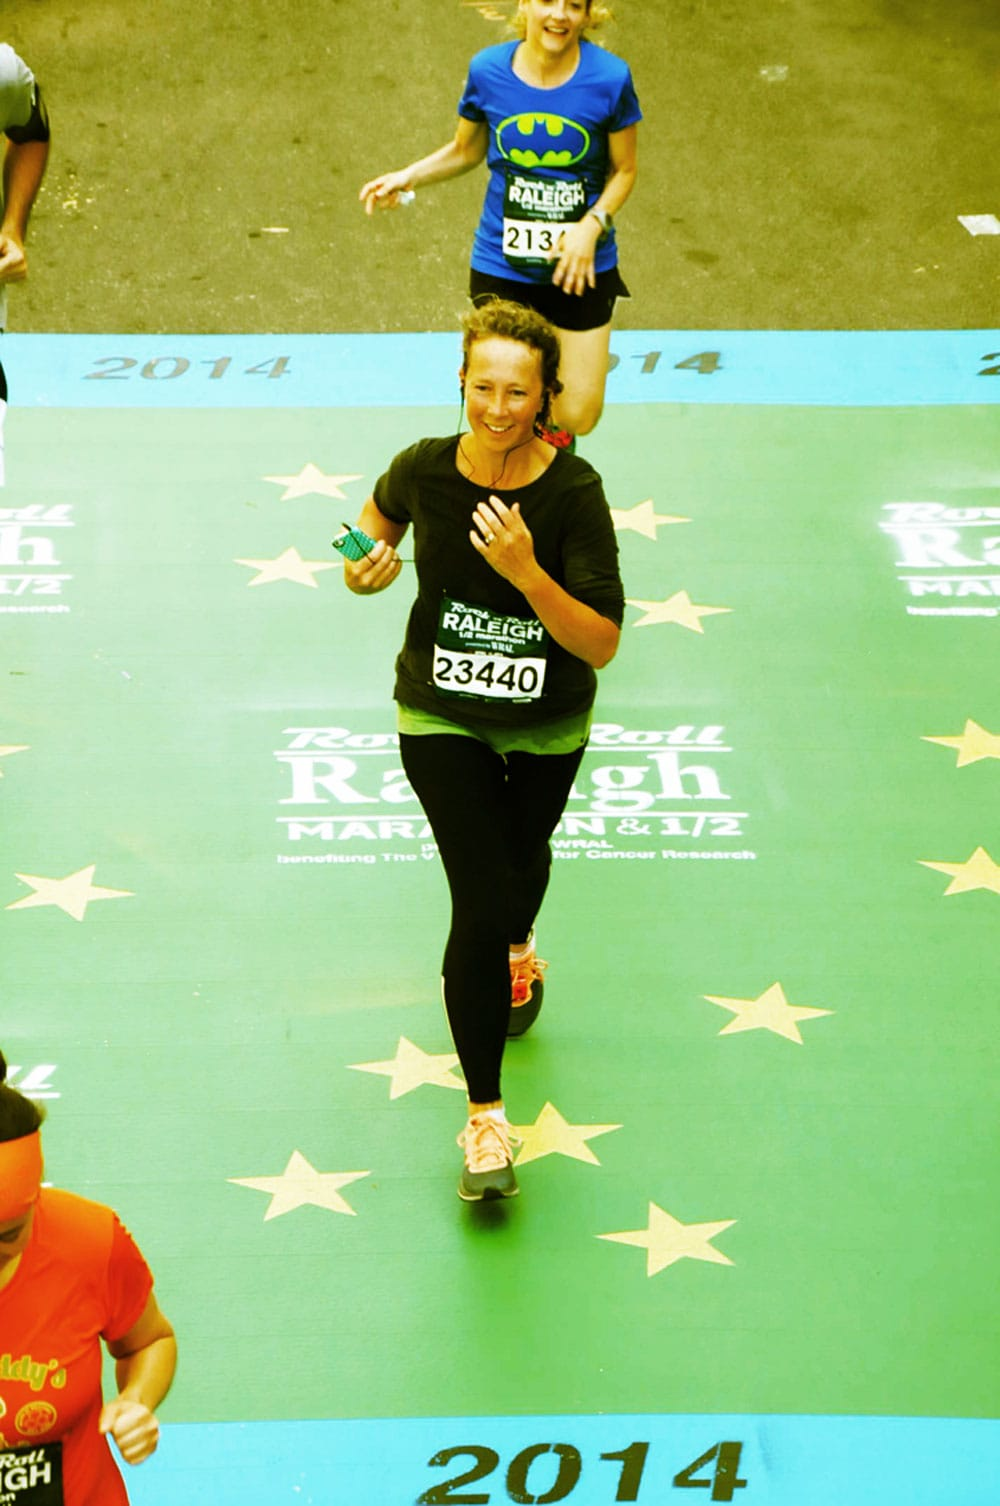 Crossing the finish line of the half marathon last year.